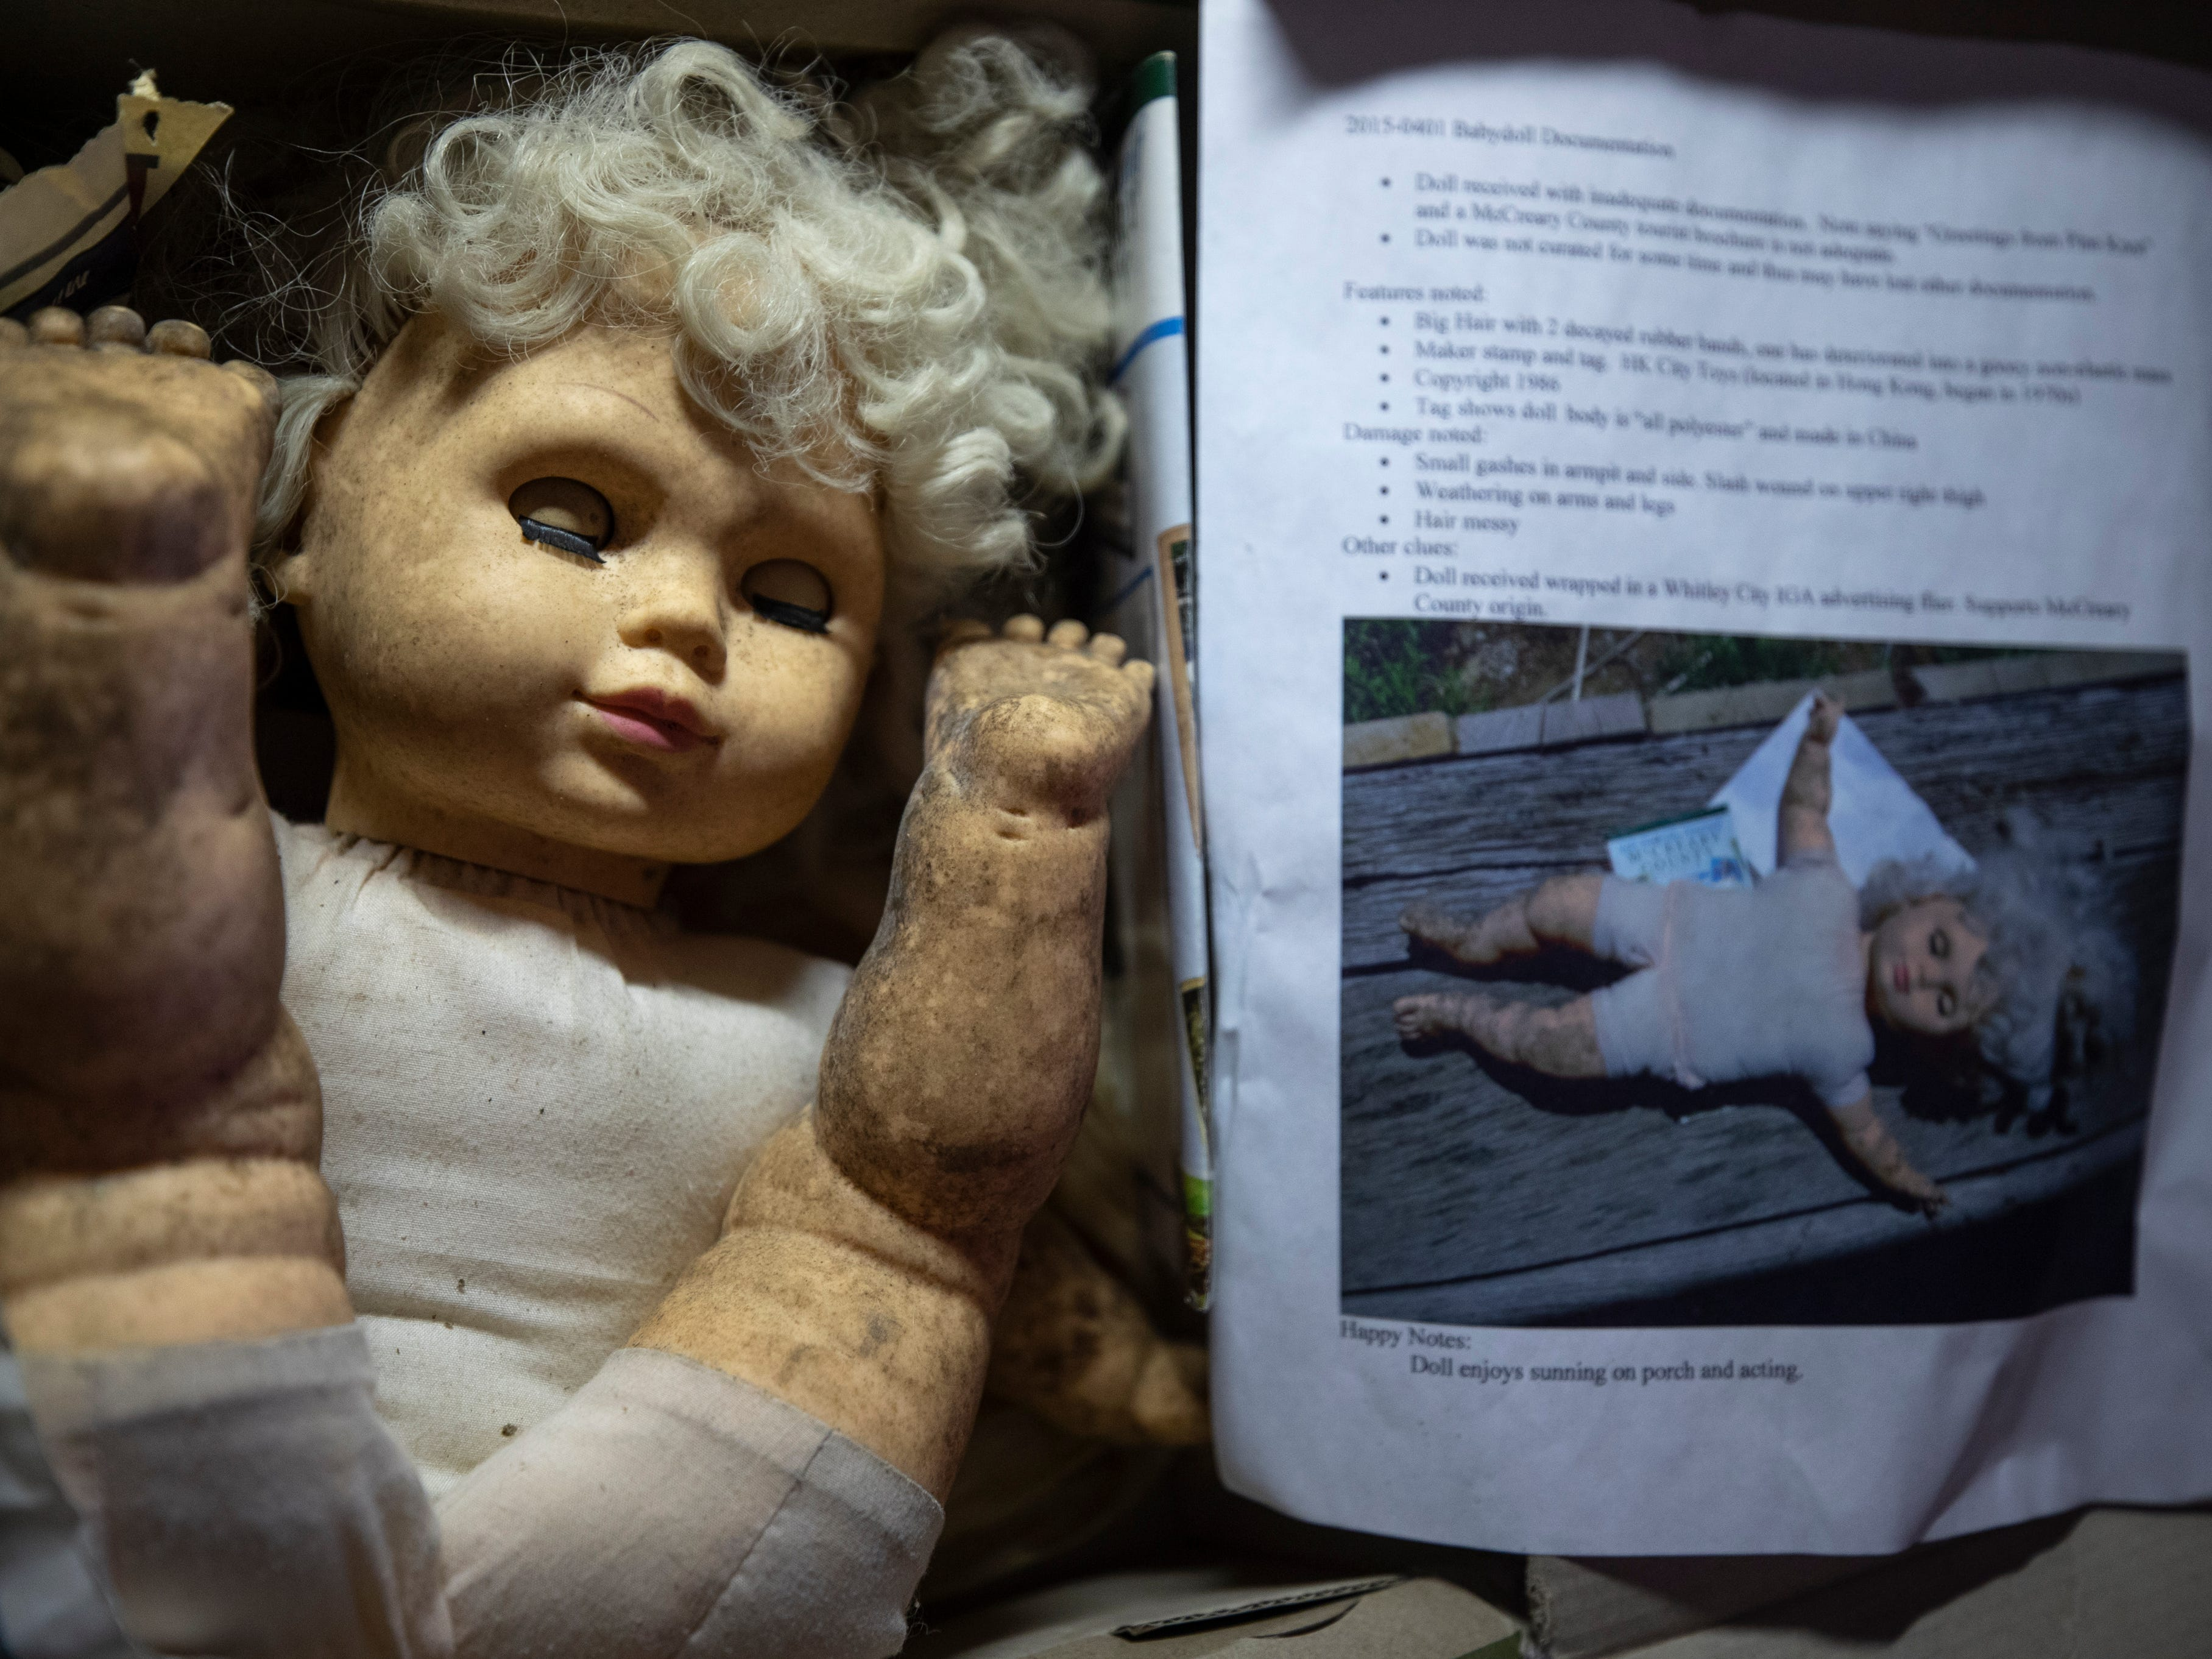 An abandoned doll resides in a box with specific documentation regarding its abandonment. April 19, 2019